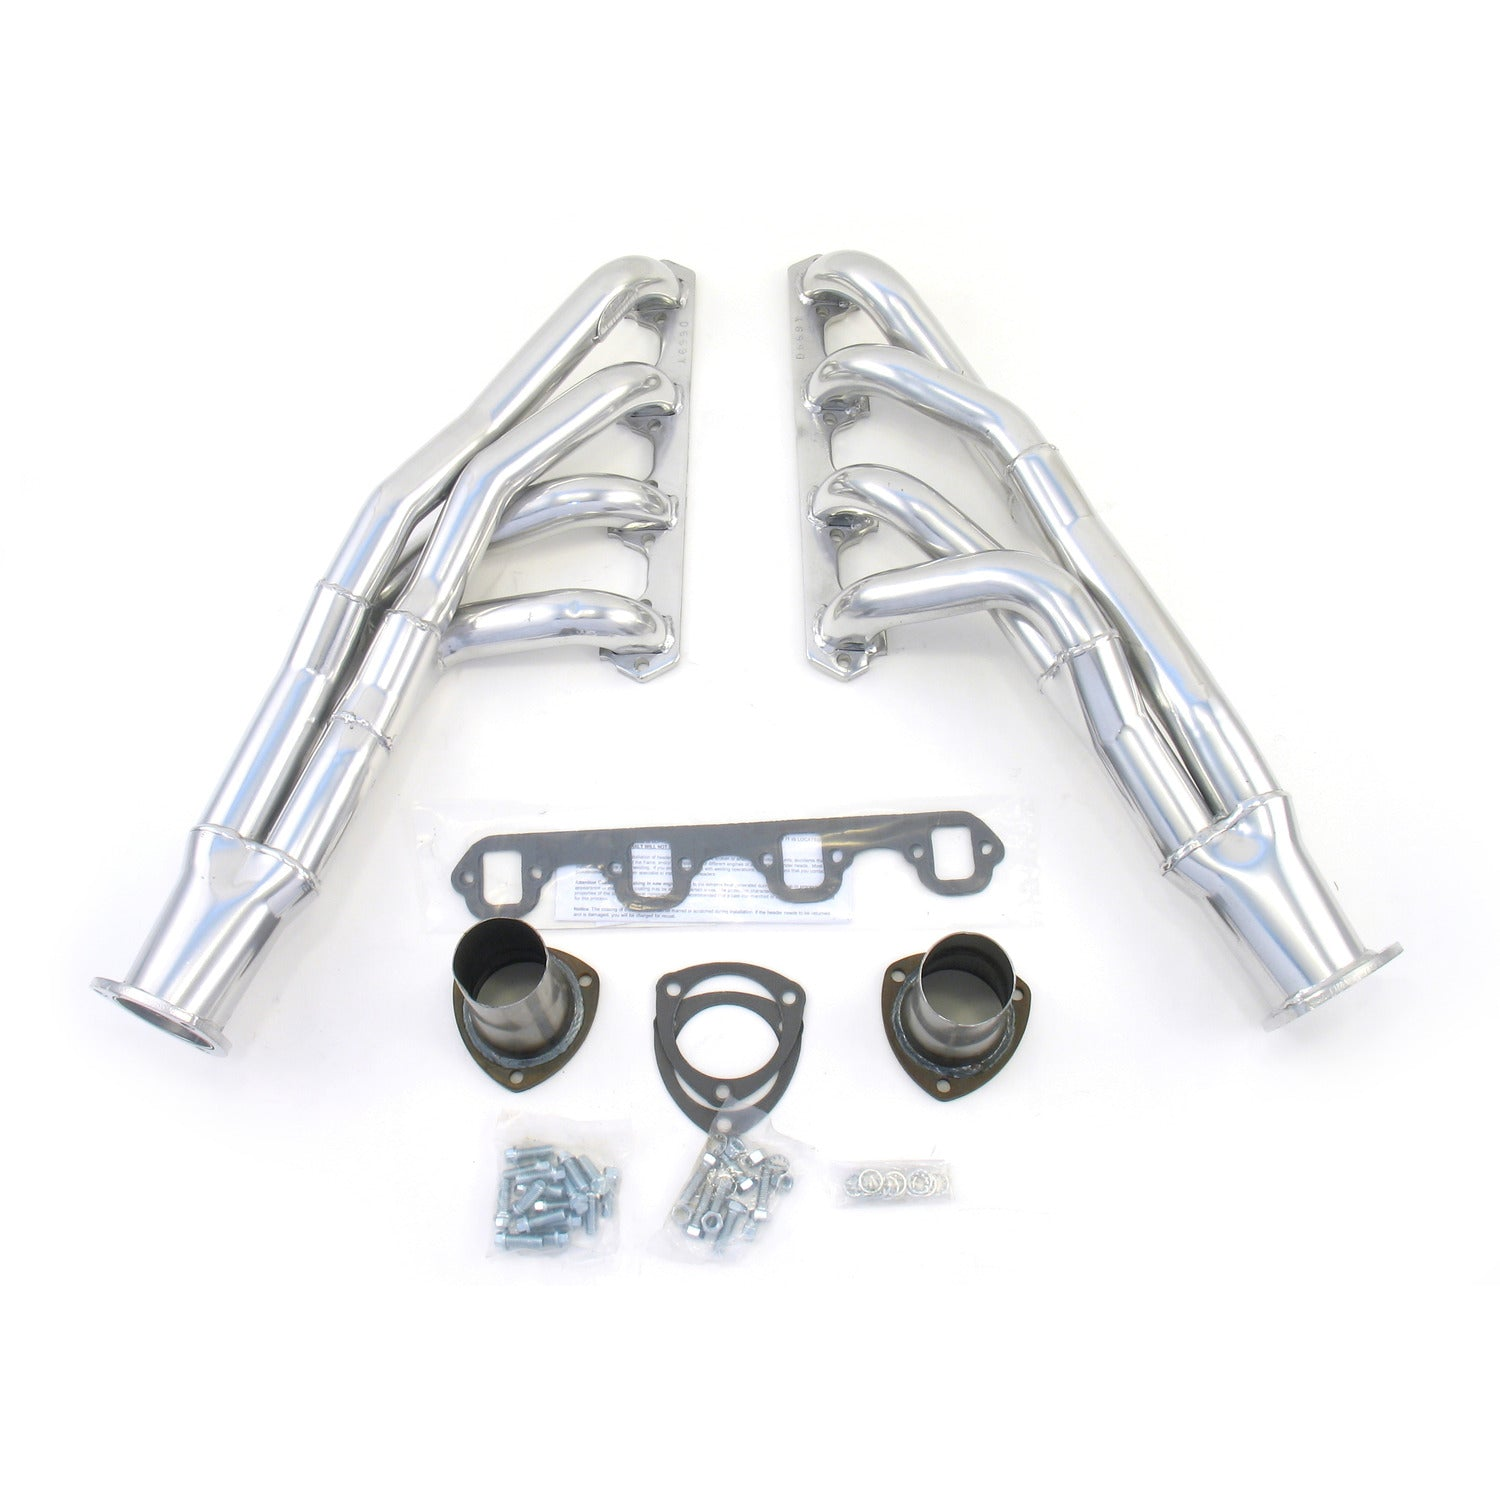 "Doug's Headers D669Y 1 3/4"" Tri-Y Header Ford Mustang 351W 67-70 Metallic Ceramic Coating"